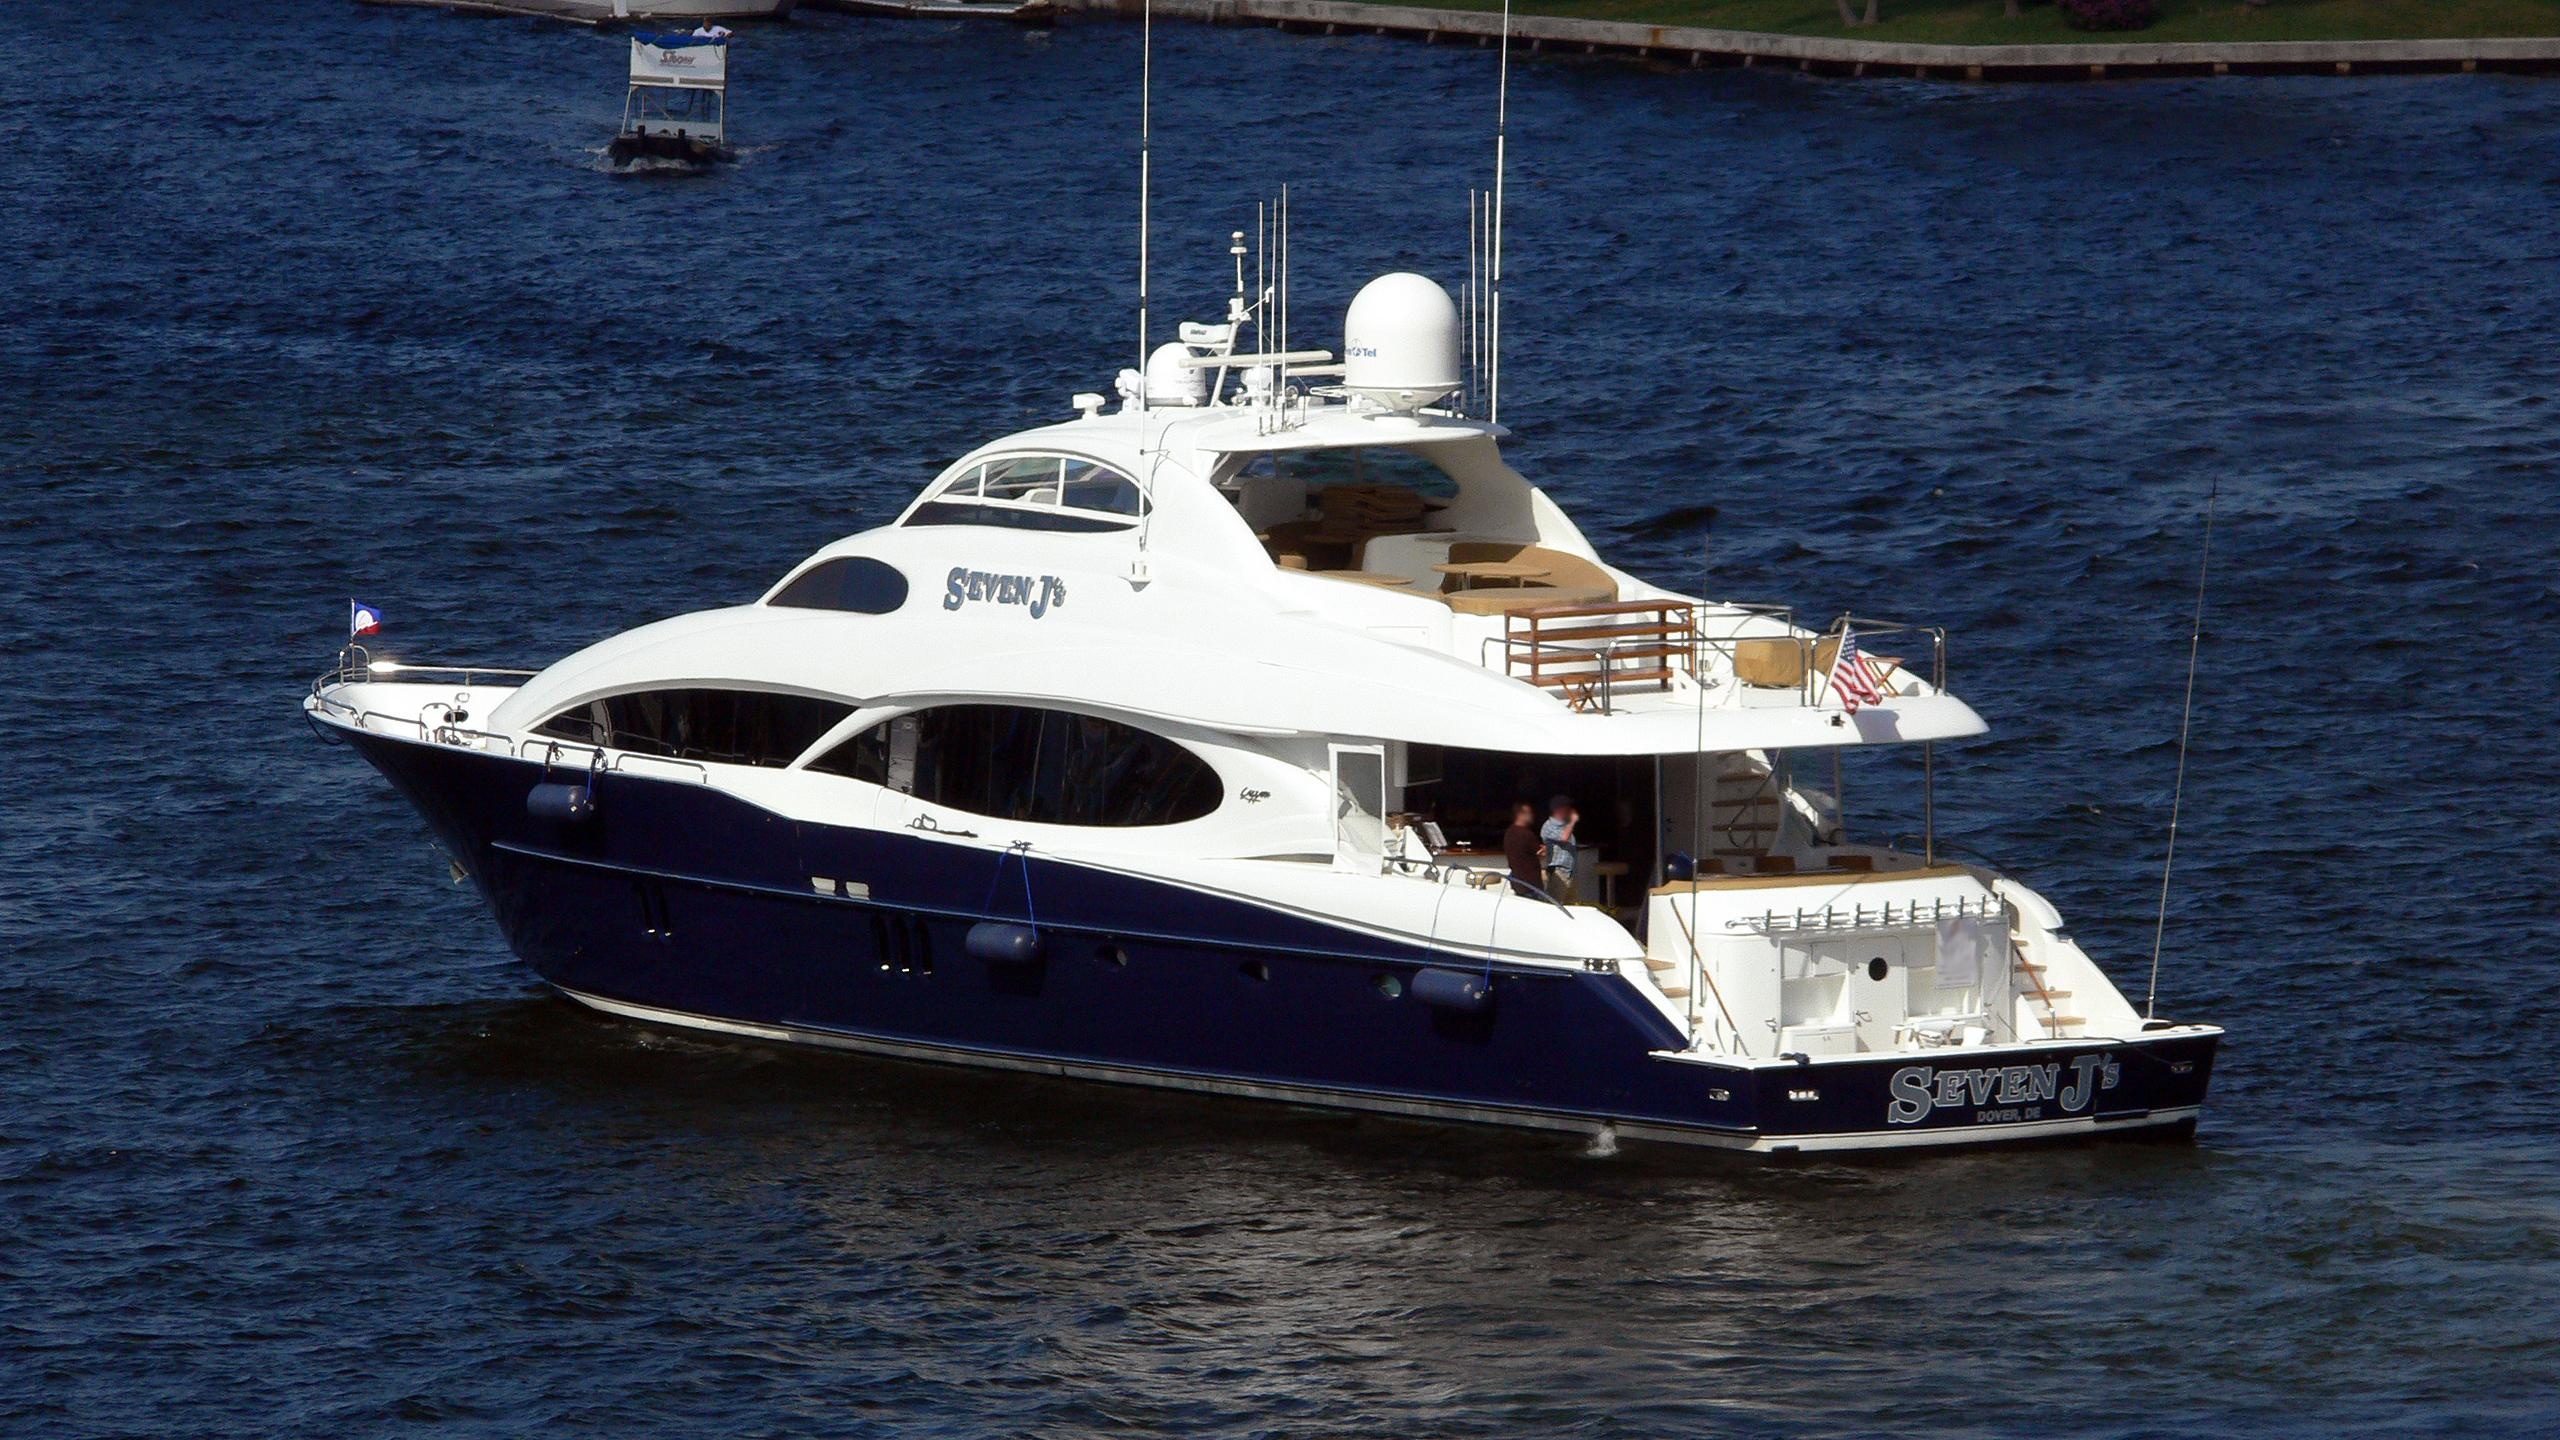 lady-b-motor-yacht-lazzara-110-sl-2005-33m-rear-profile